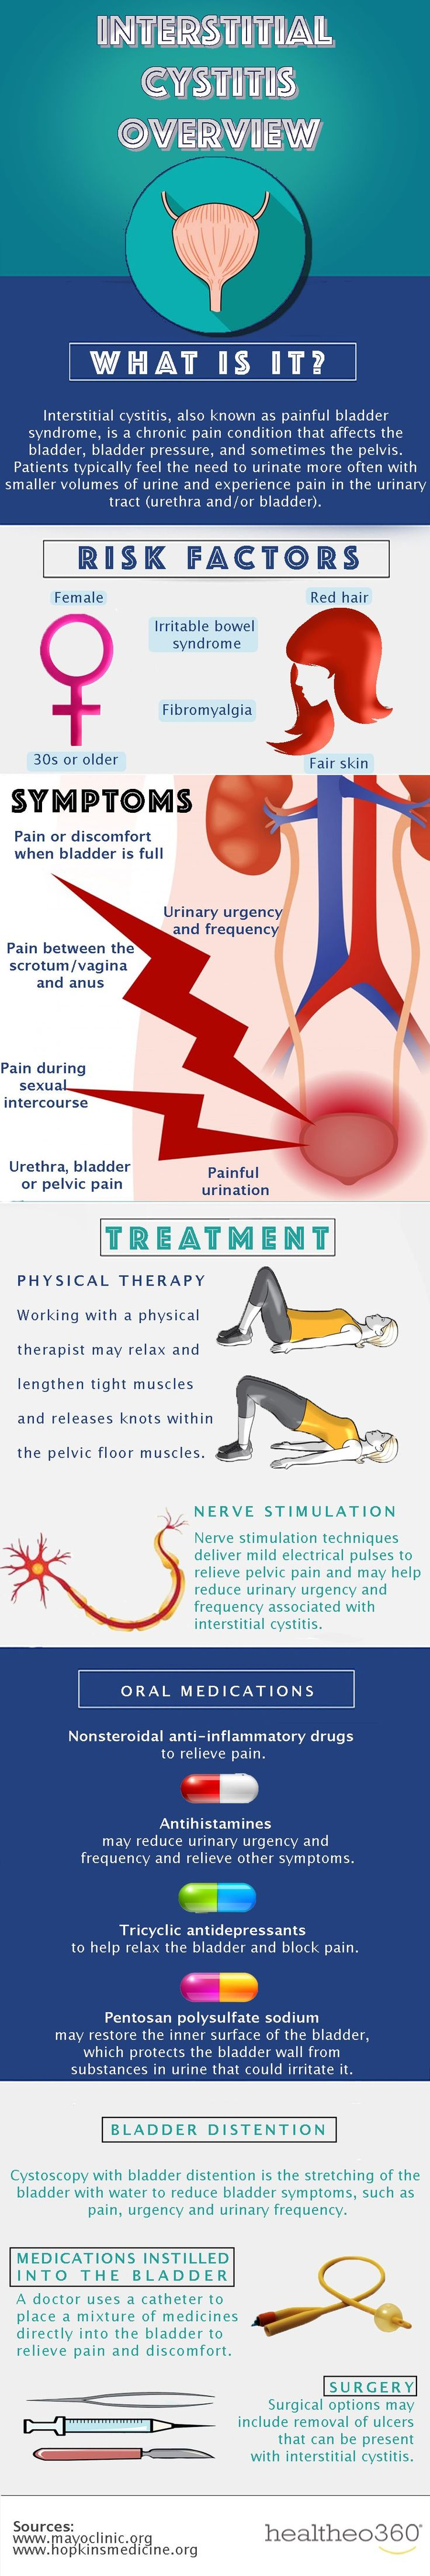 Learn about the symptoms, risk factors, and treatment options for interstitial cystitis with this helpful infographic! https://www.healtheo360.com/blog/interstitial-cystitis-ic/?utm_content=buffer1a134&utm_medium=social&utm_source=pinterest.com&utm_campaign=buffer